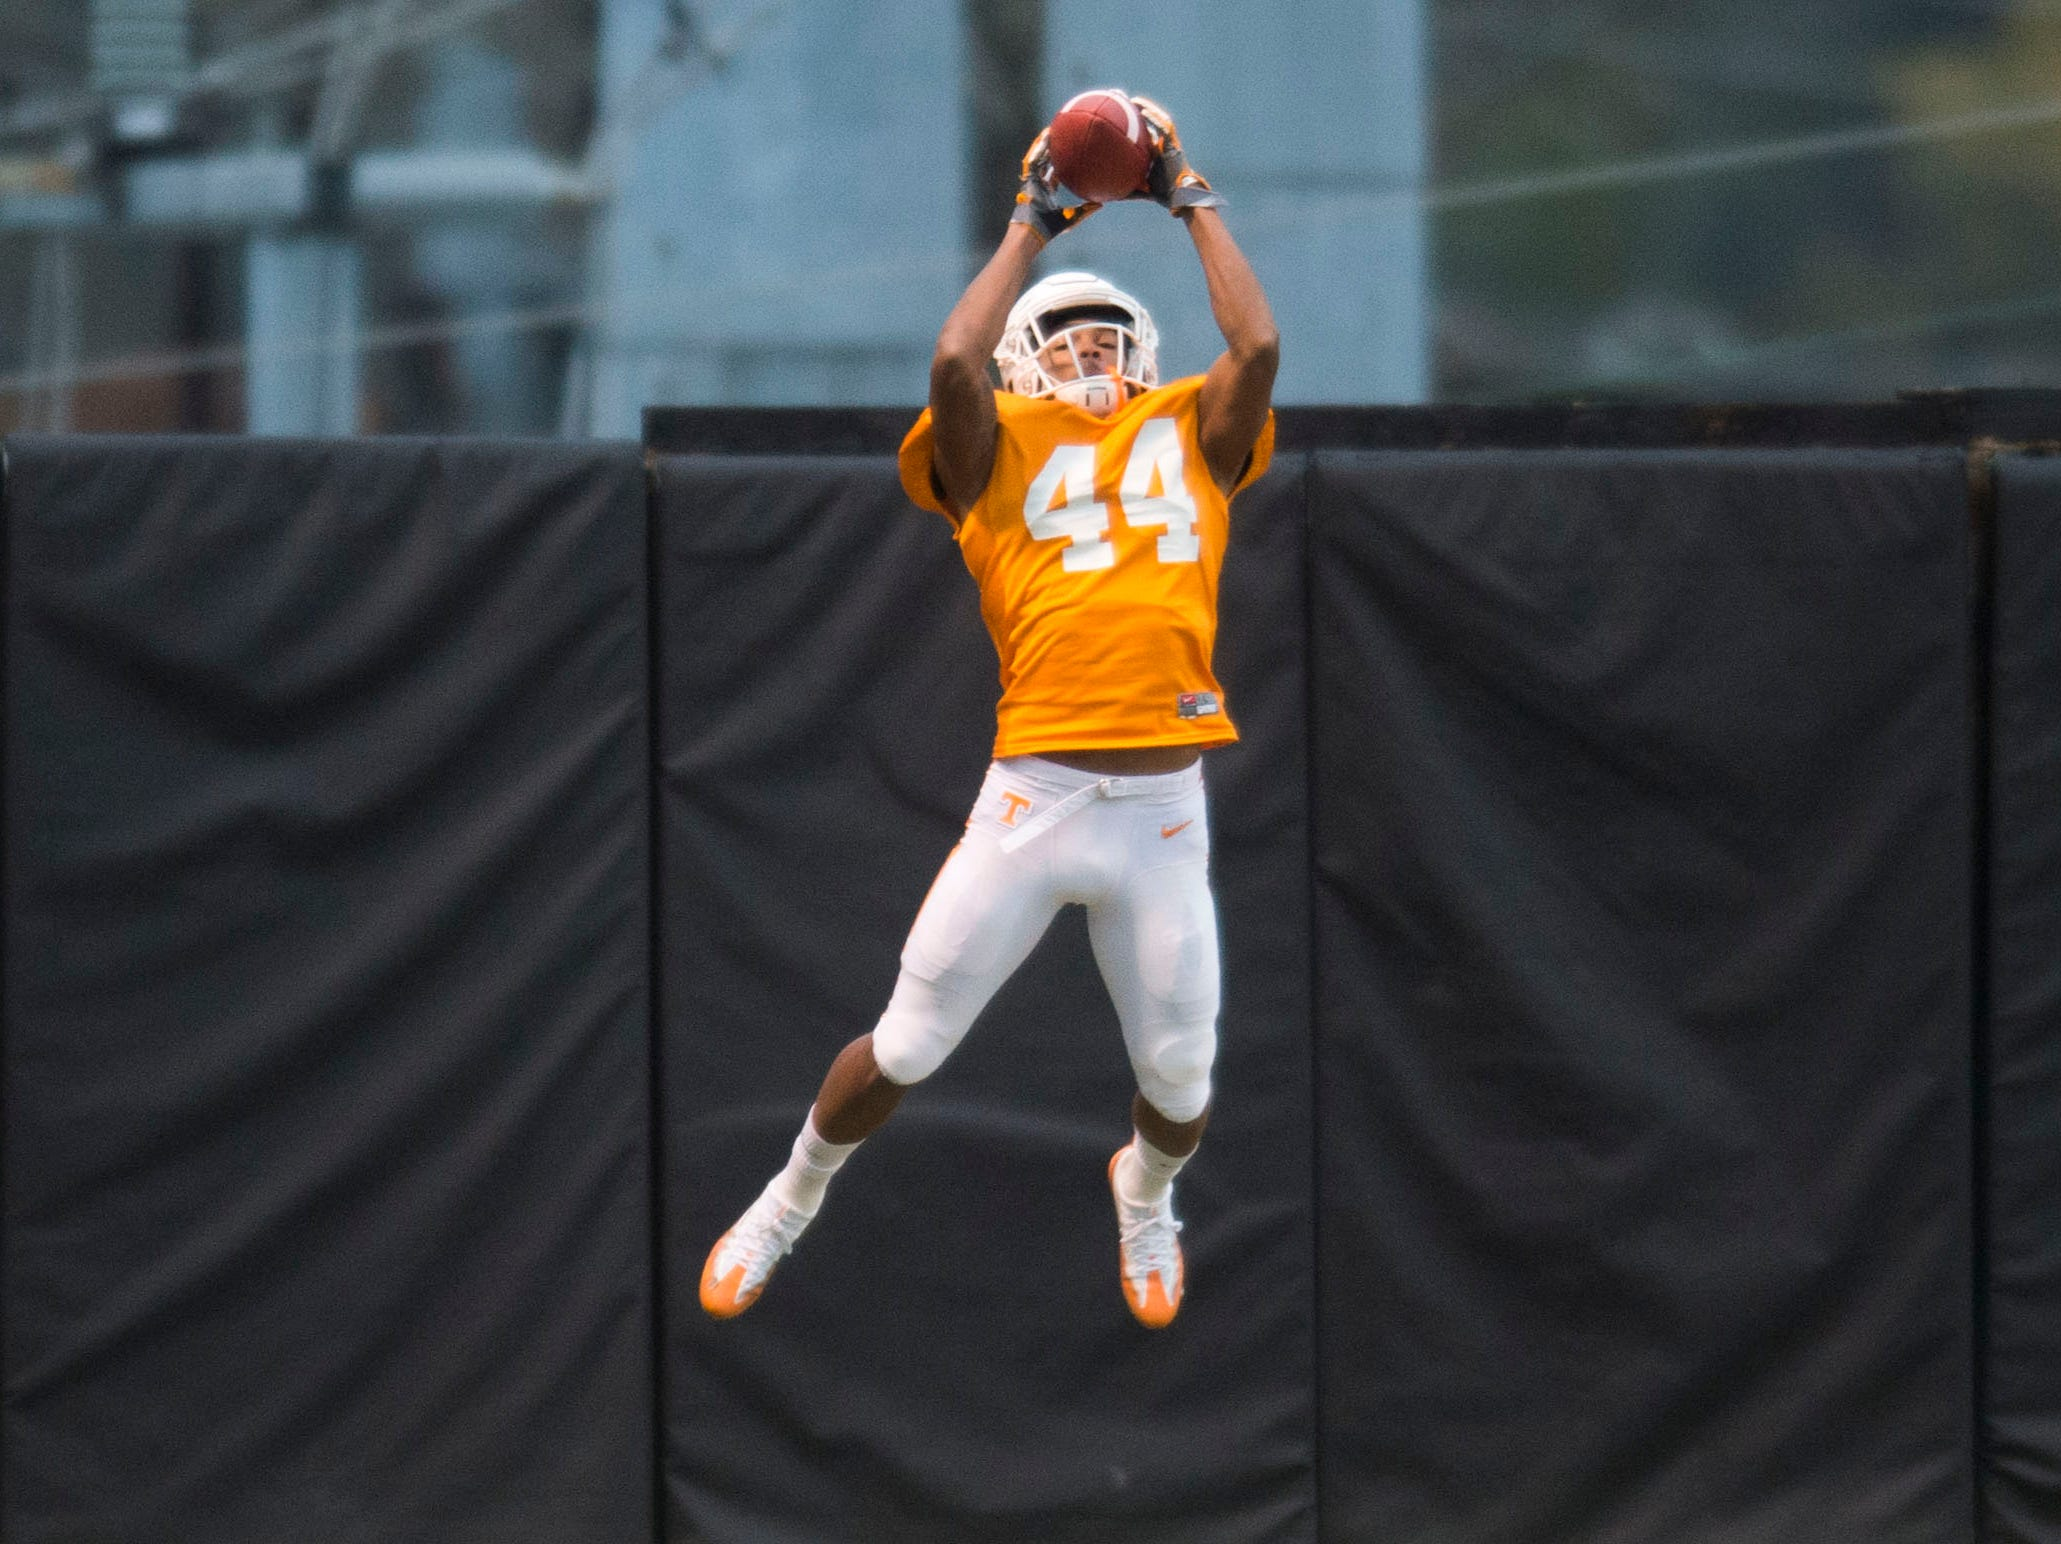 Tennessee defensive back Cheyenne Labruzza (44) makes a catch during a University of Tennessee football practice, Tuesday, Nov. 13, 2018.